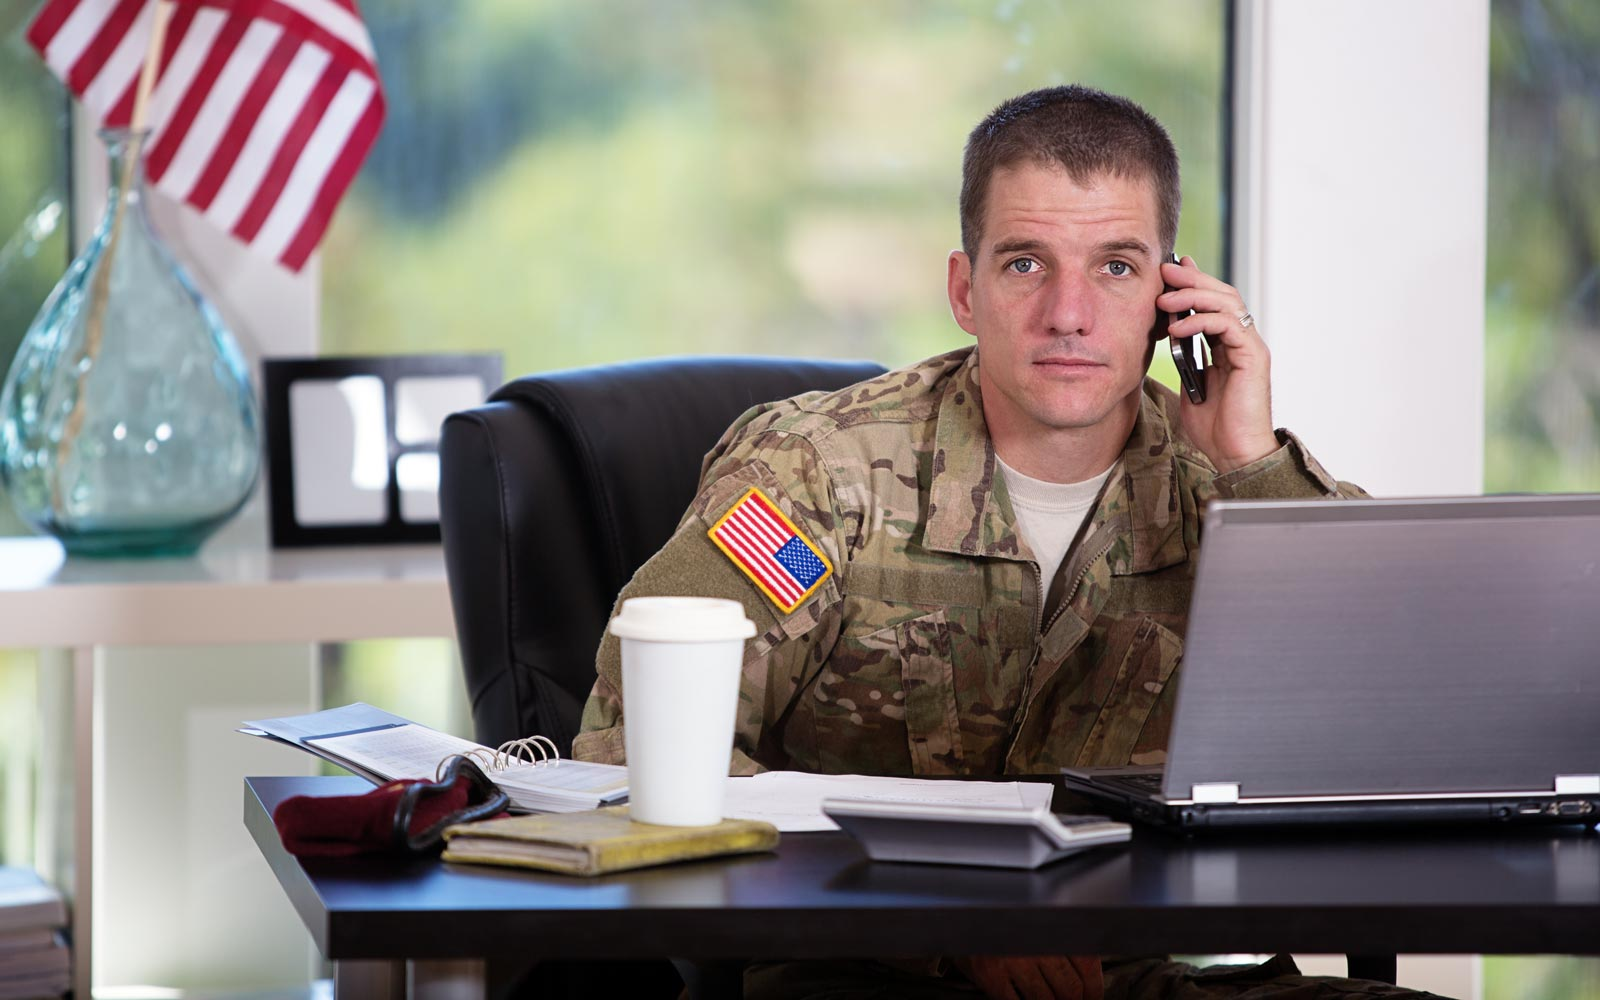 Male veteran on a phone at a work desk with an American flag in the background.